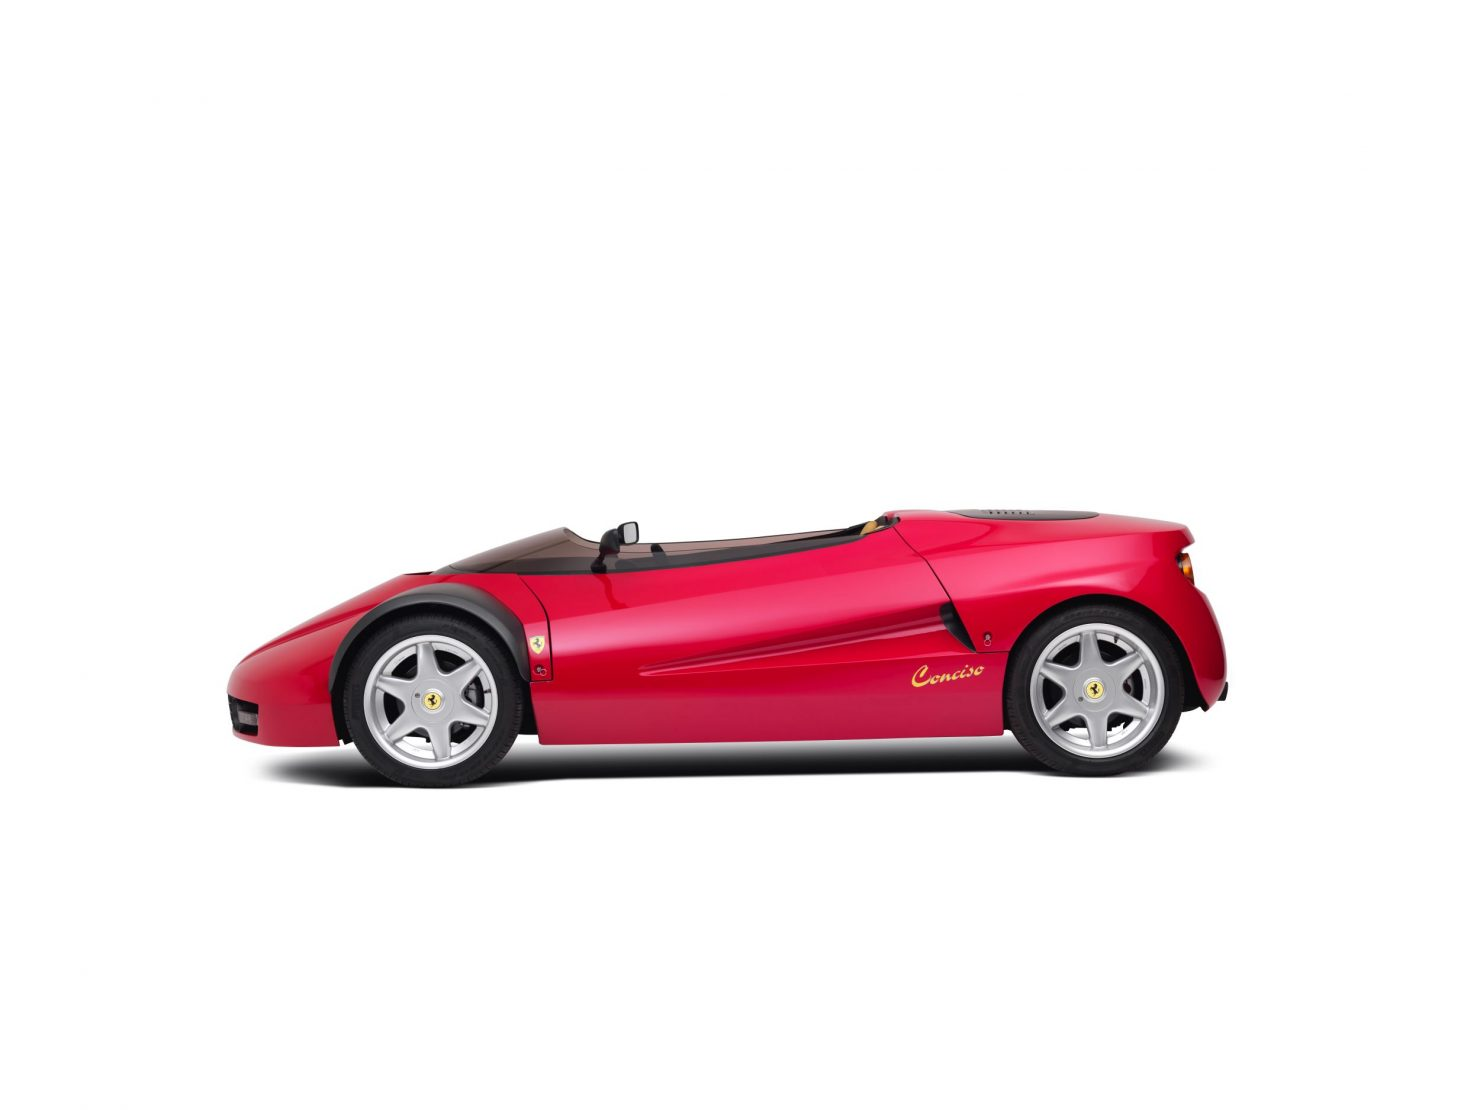 ferrari 328 conciso concept car 17 1480x1110 - Only One Ever Made: 1989 Ferrari 328 Conciso